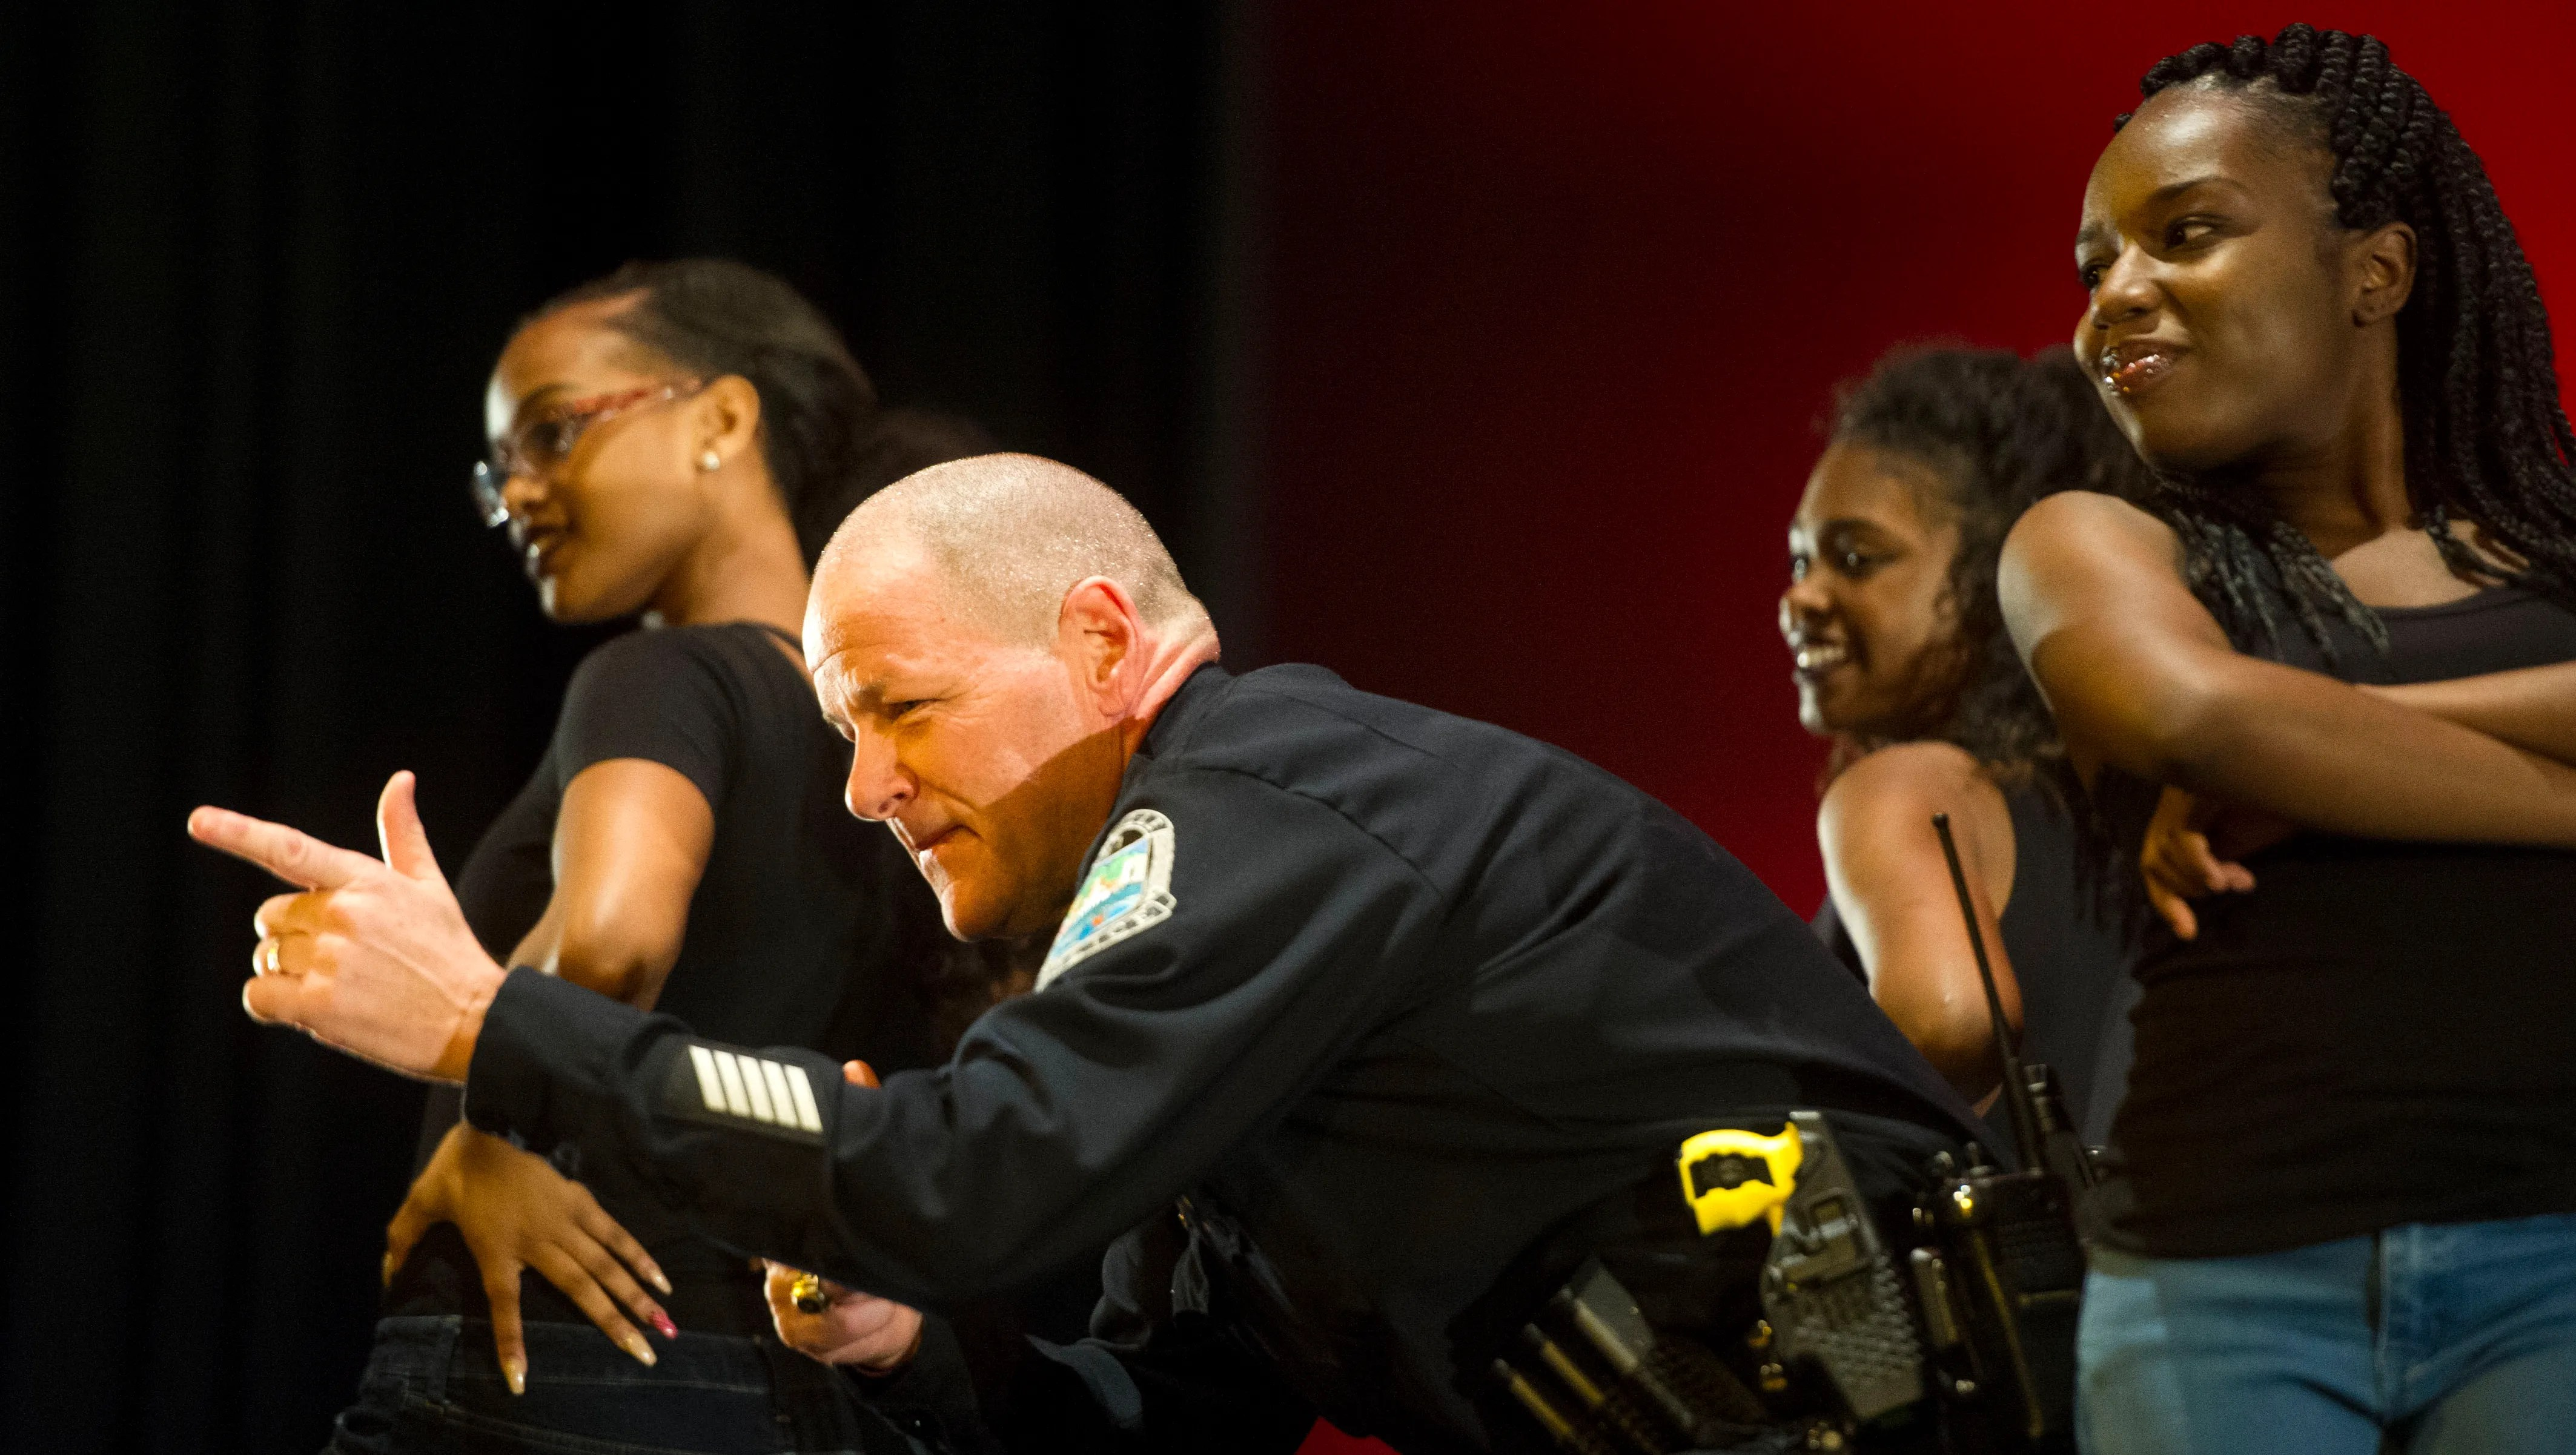 Kpd Officers Dance With Students Black History Month Show